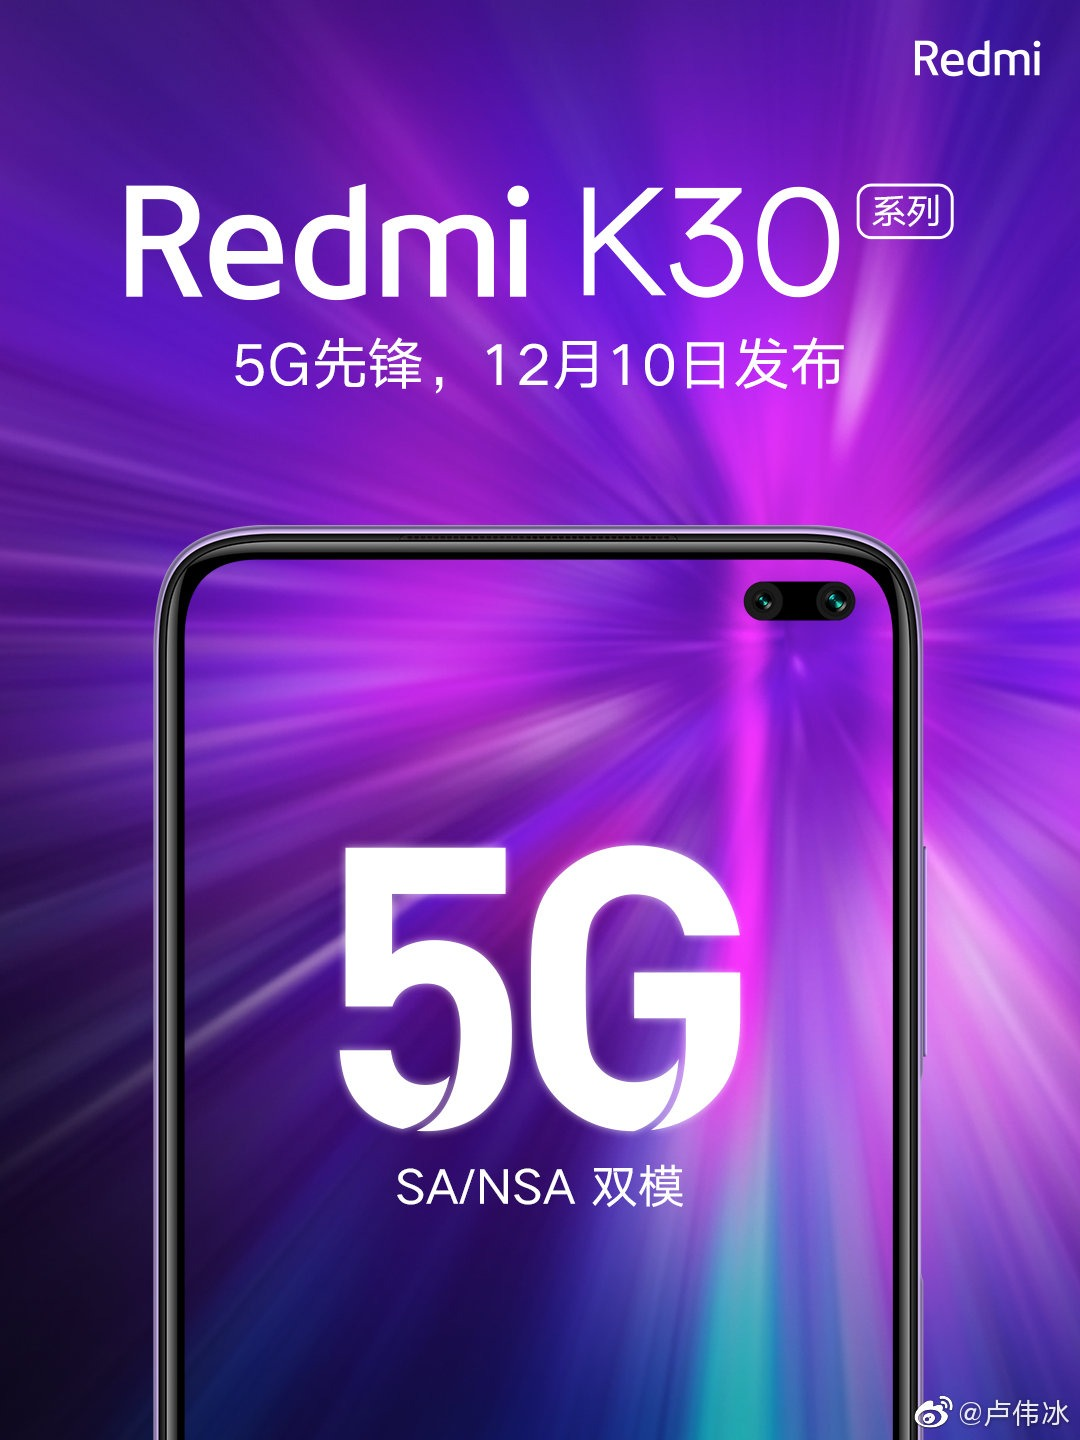 Rumored Redmi K30 (4G) specs - Snapdragon 730G & 60MP camera